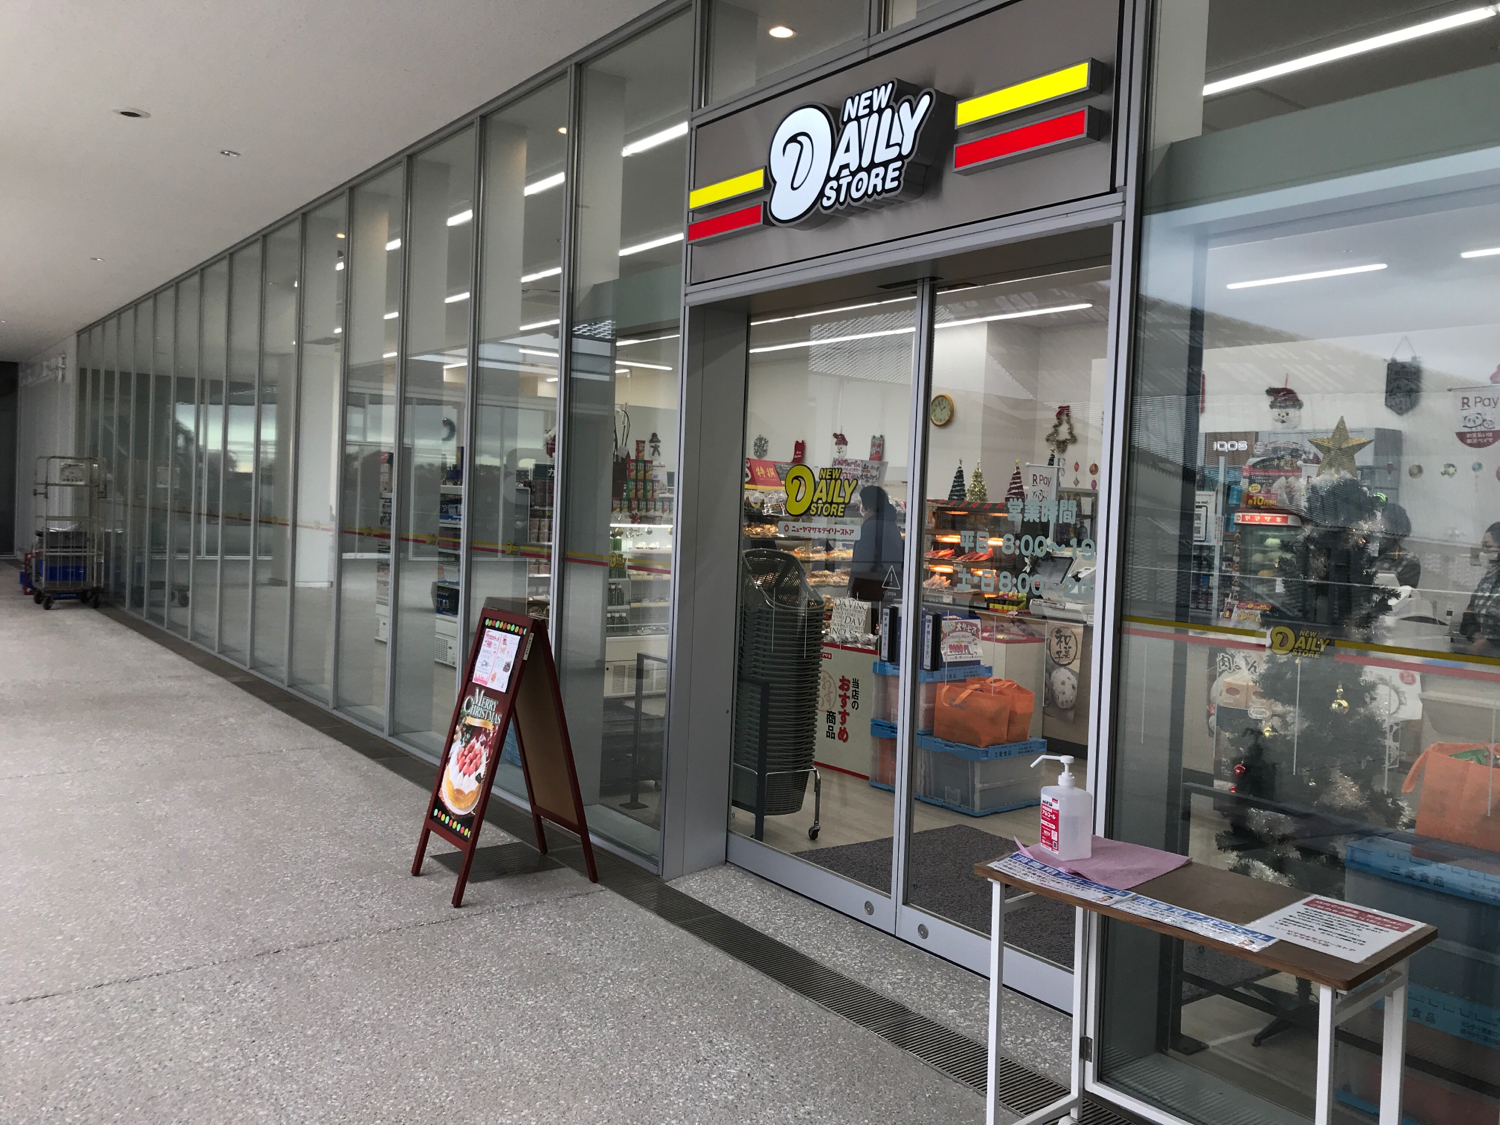 NEW ADILY STORE